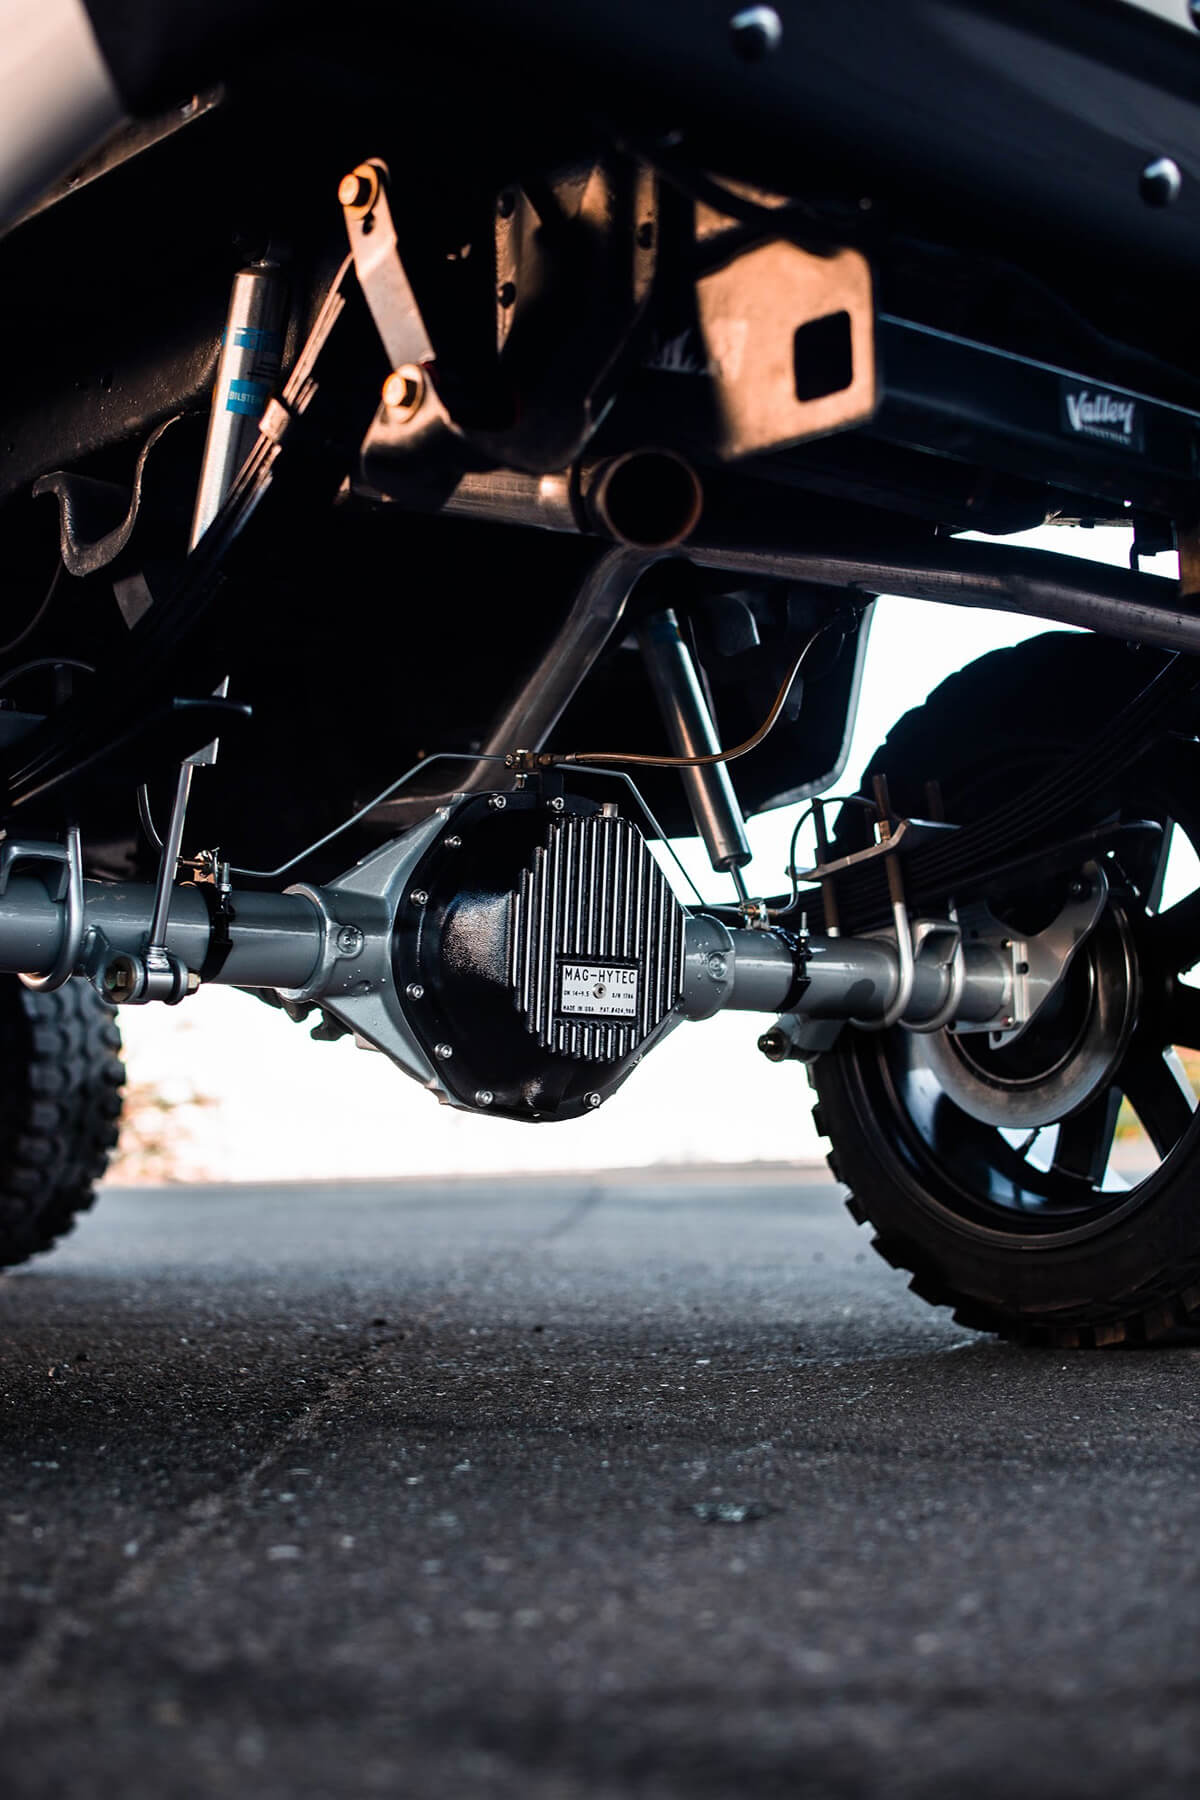 14 bolt swapped rear end - Chevy C/K V10 truck